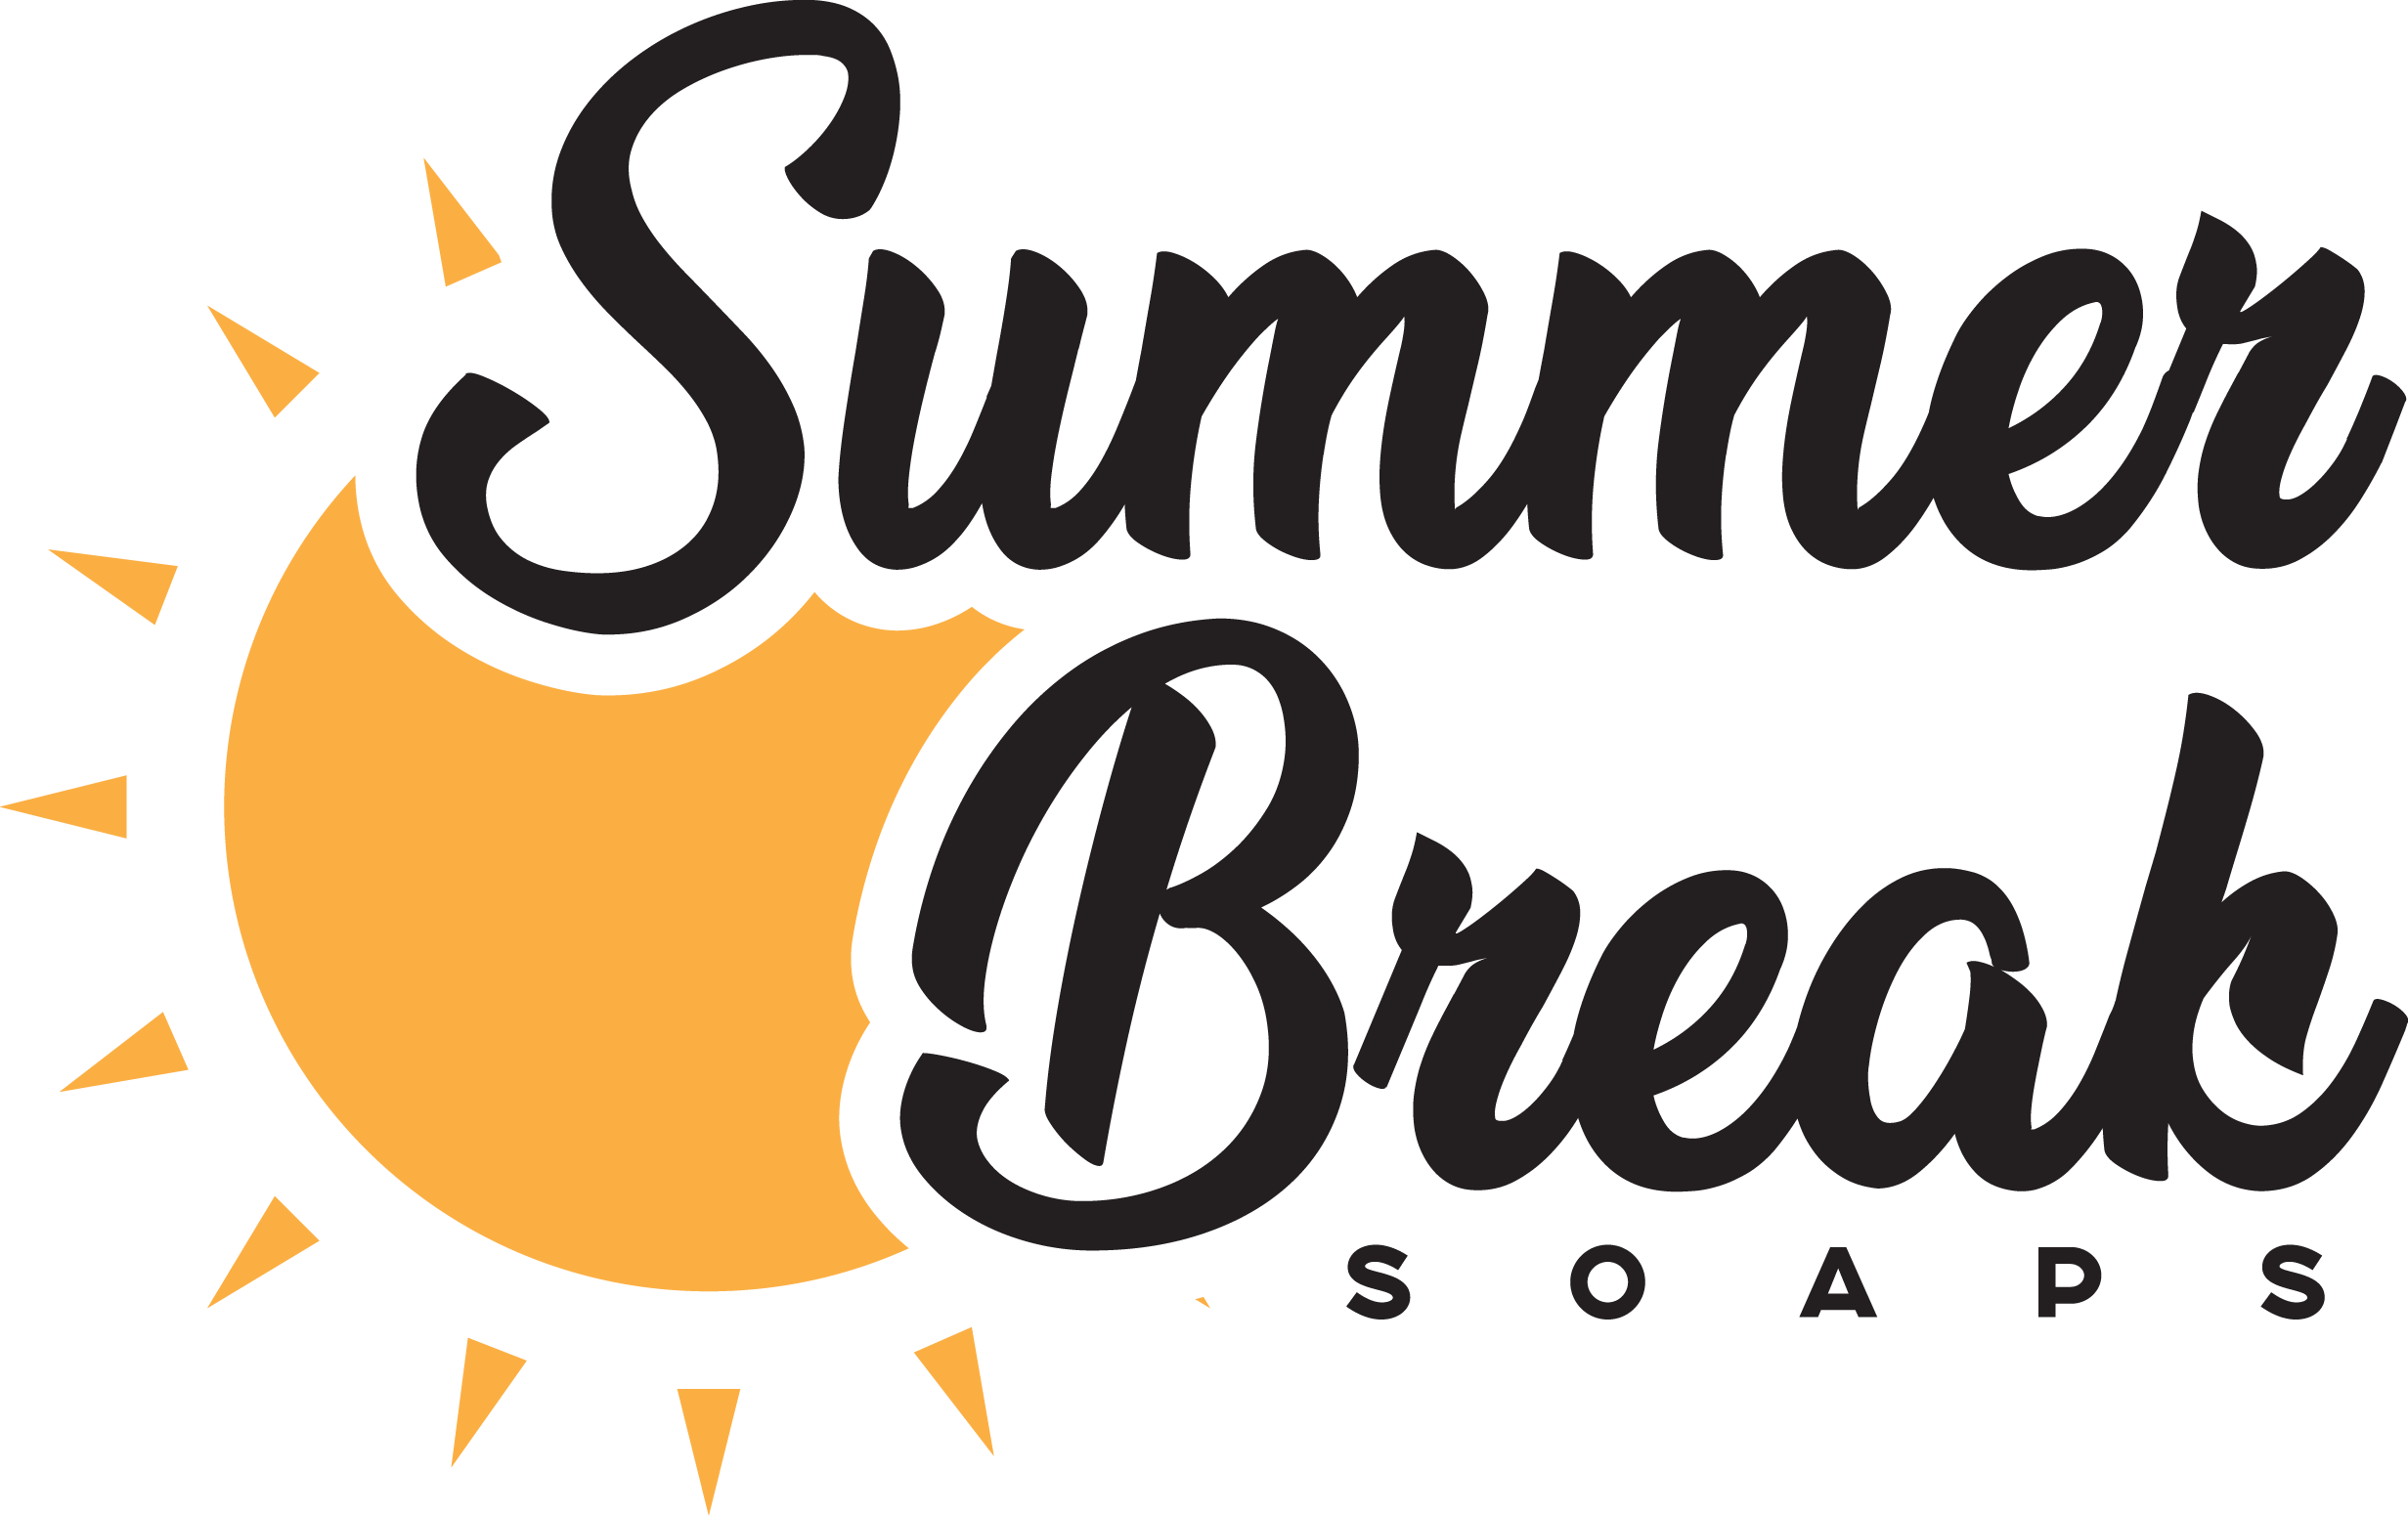 Summer Break Soaps logo